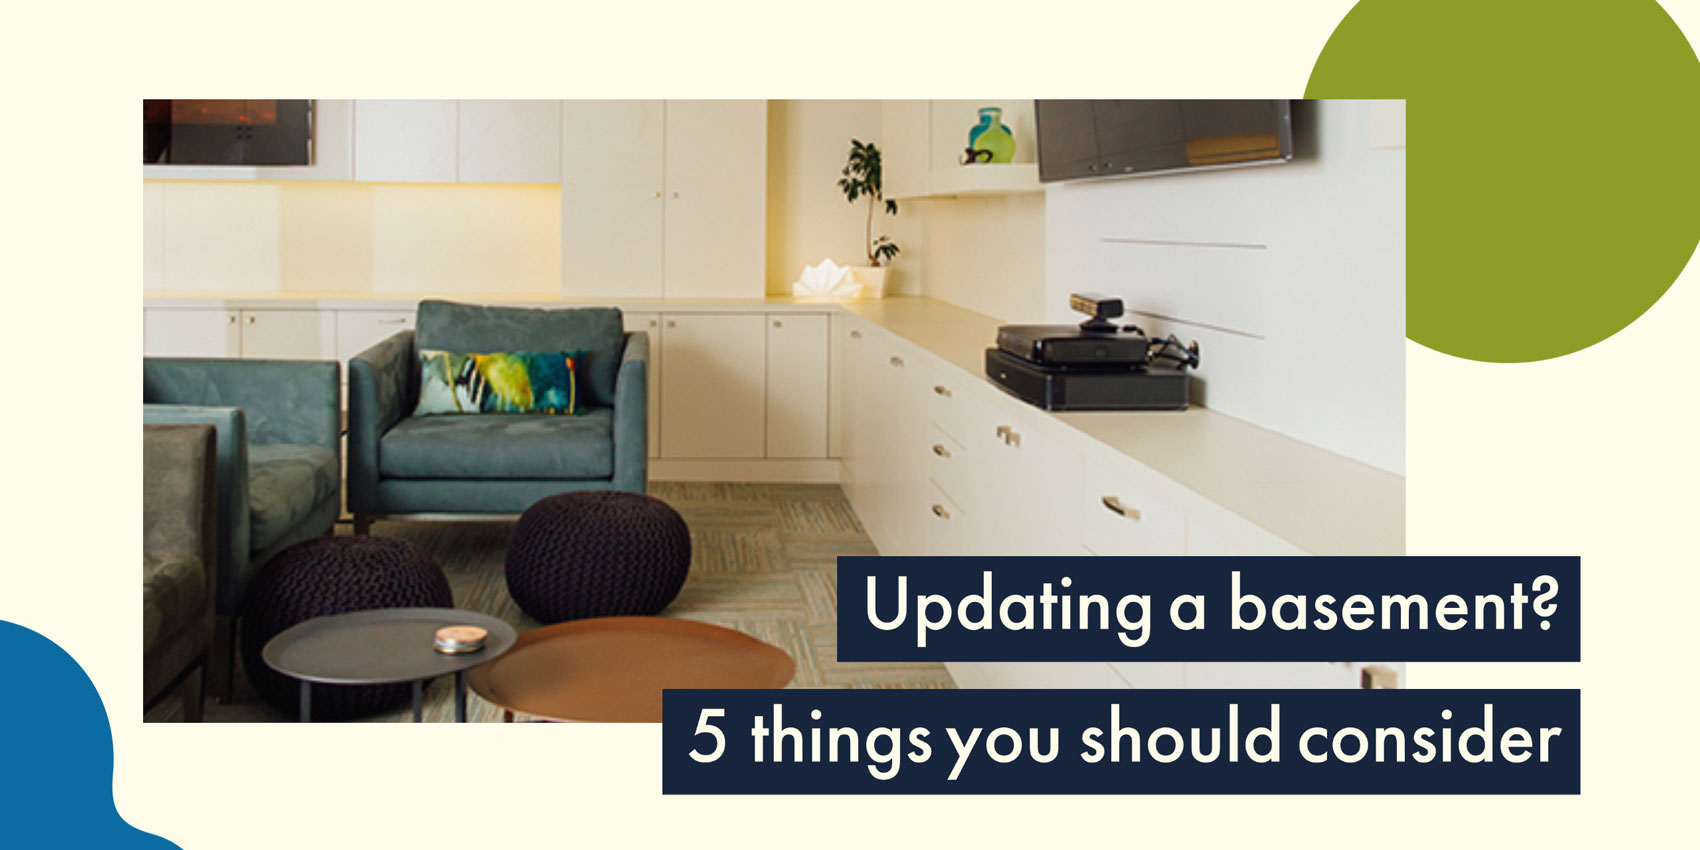 Updating a basement? 5 things you should consider